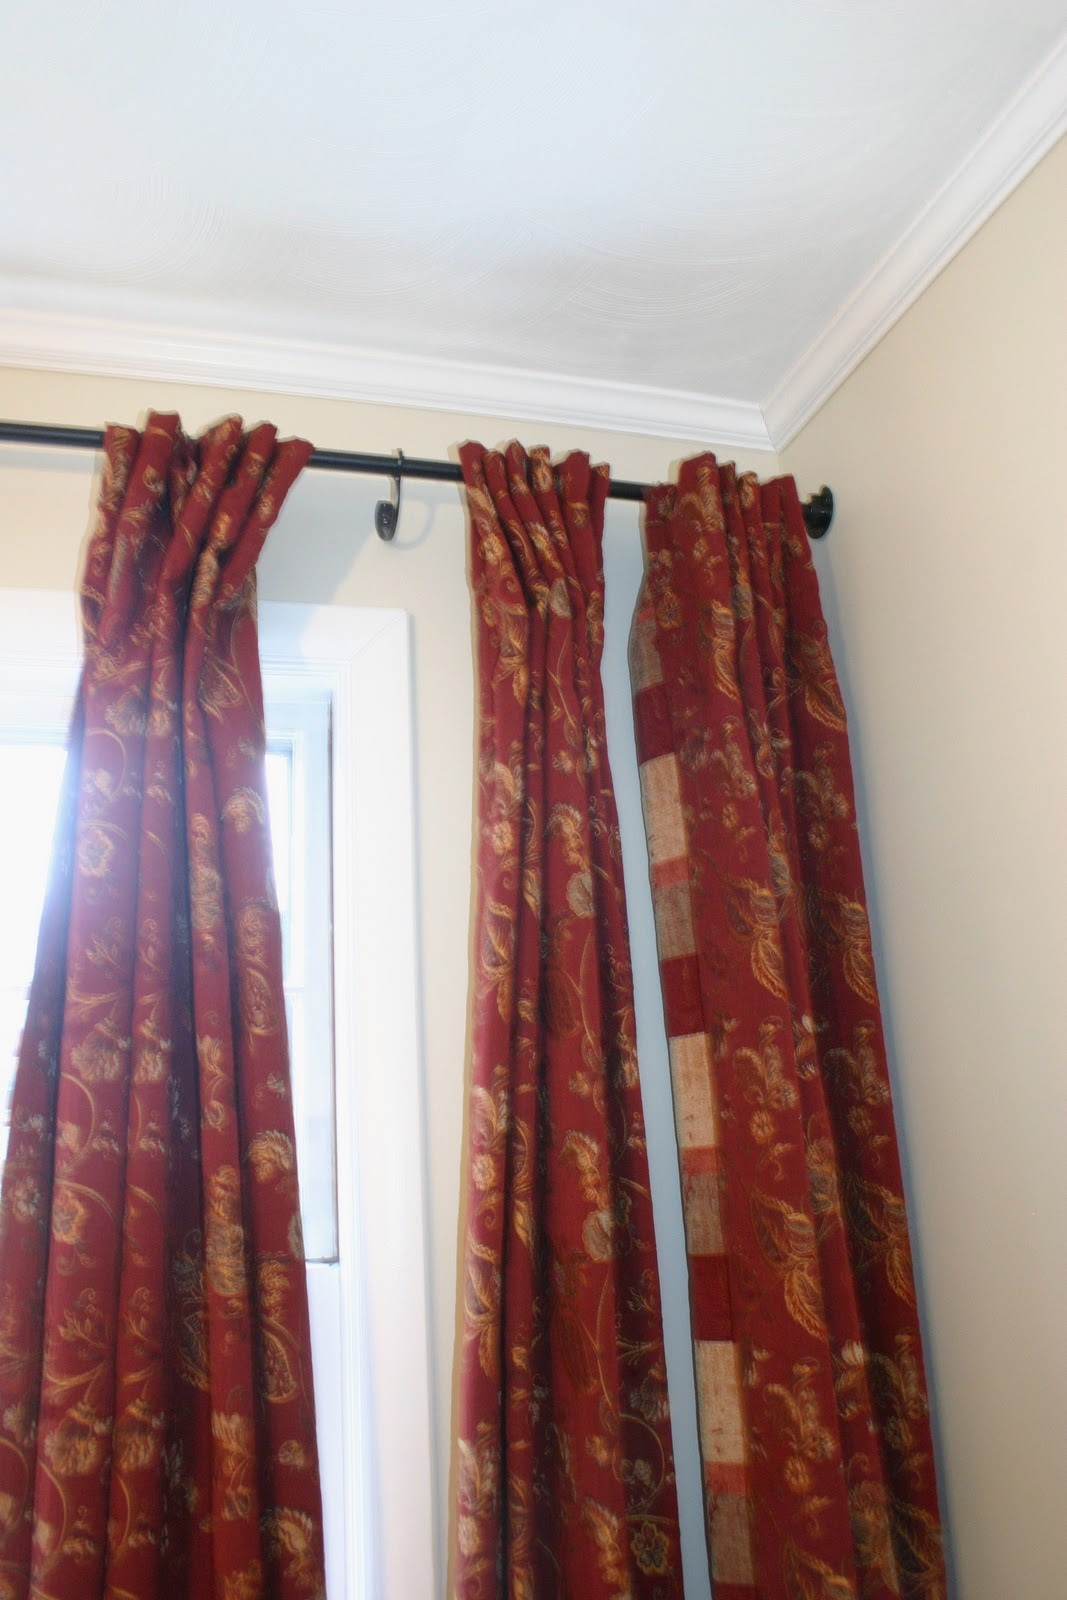 Wall to wall window treatments - No. 29 Design